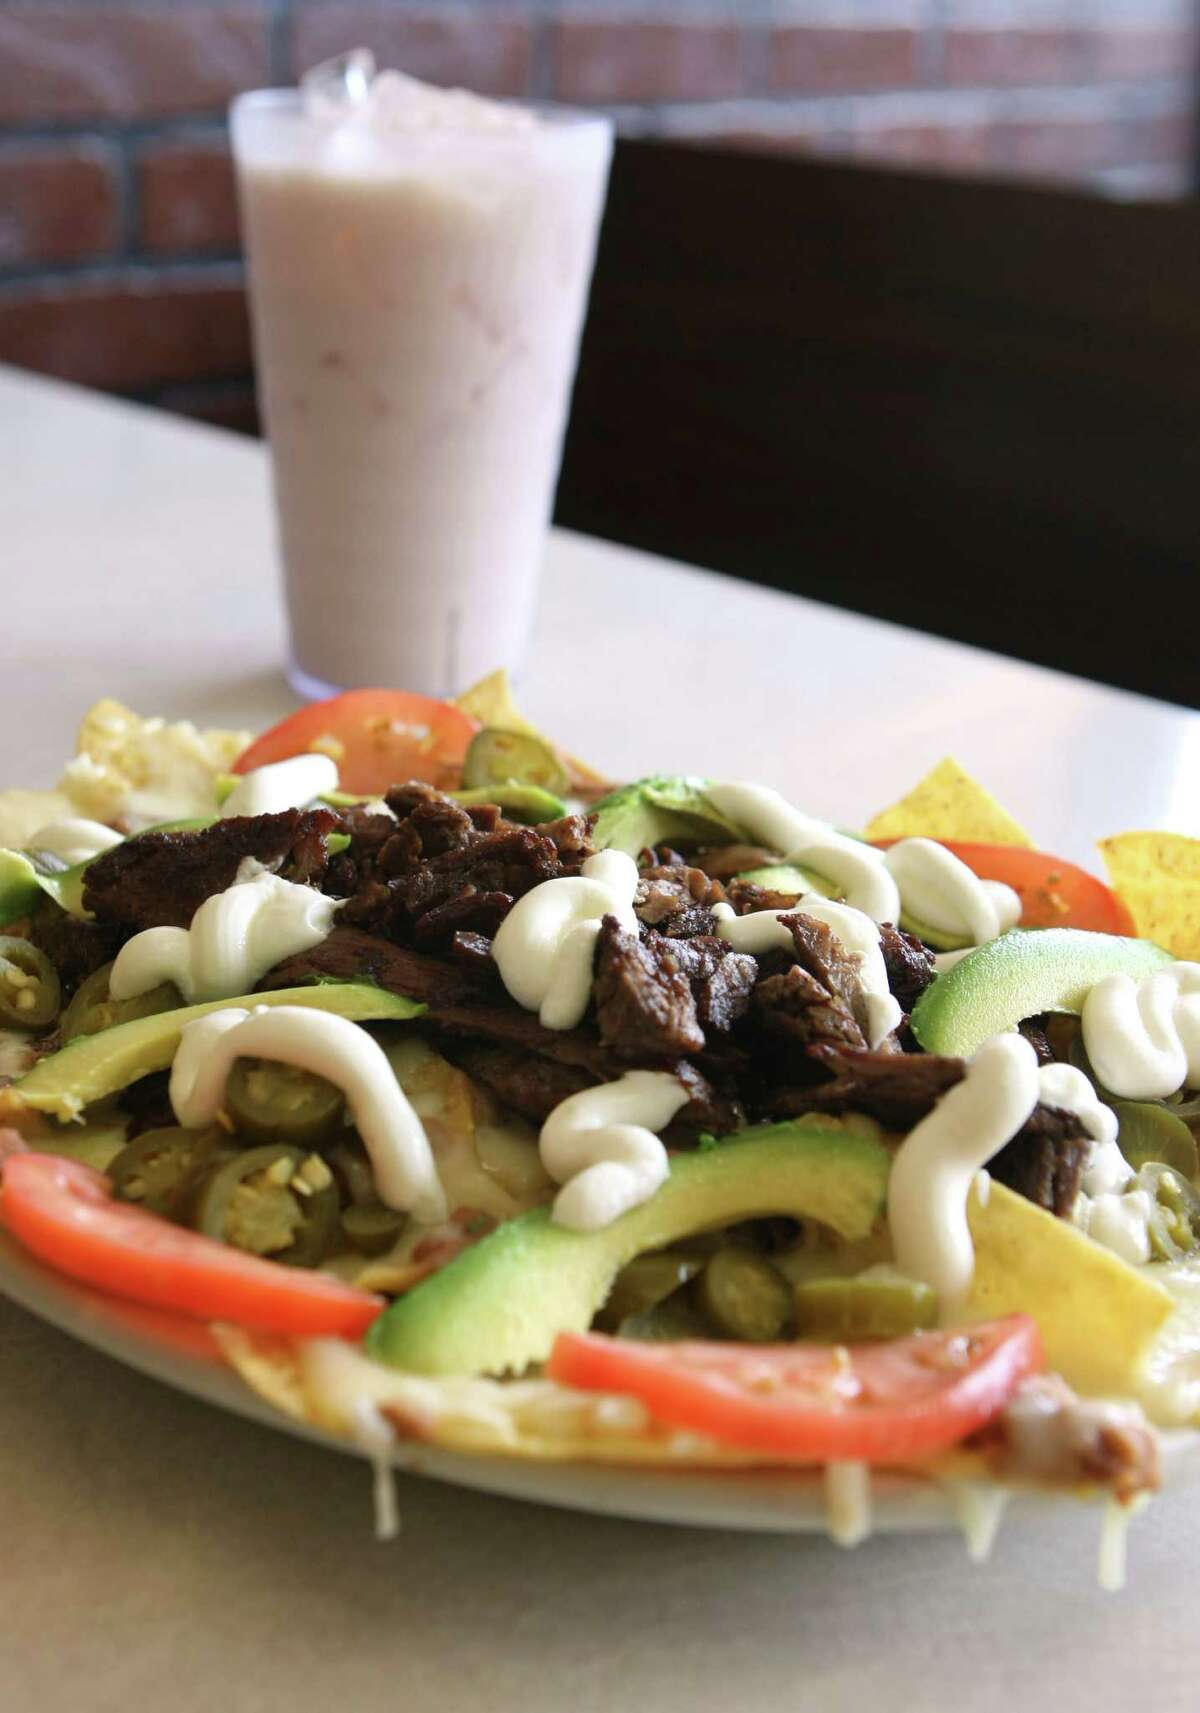 Beef nachos and horchata at Taqueria Datapoint.